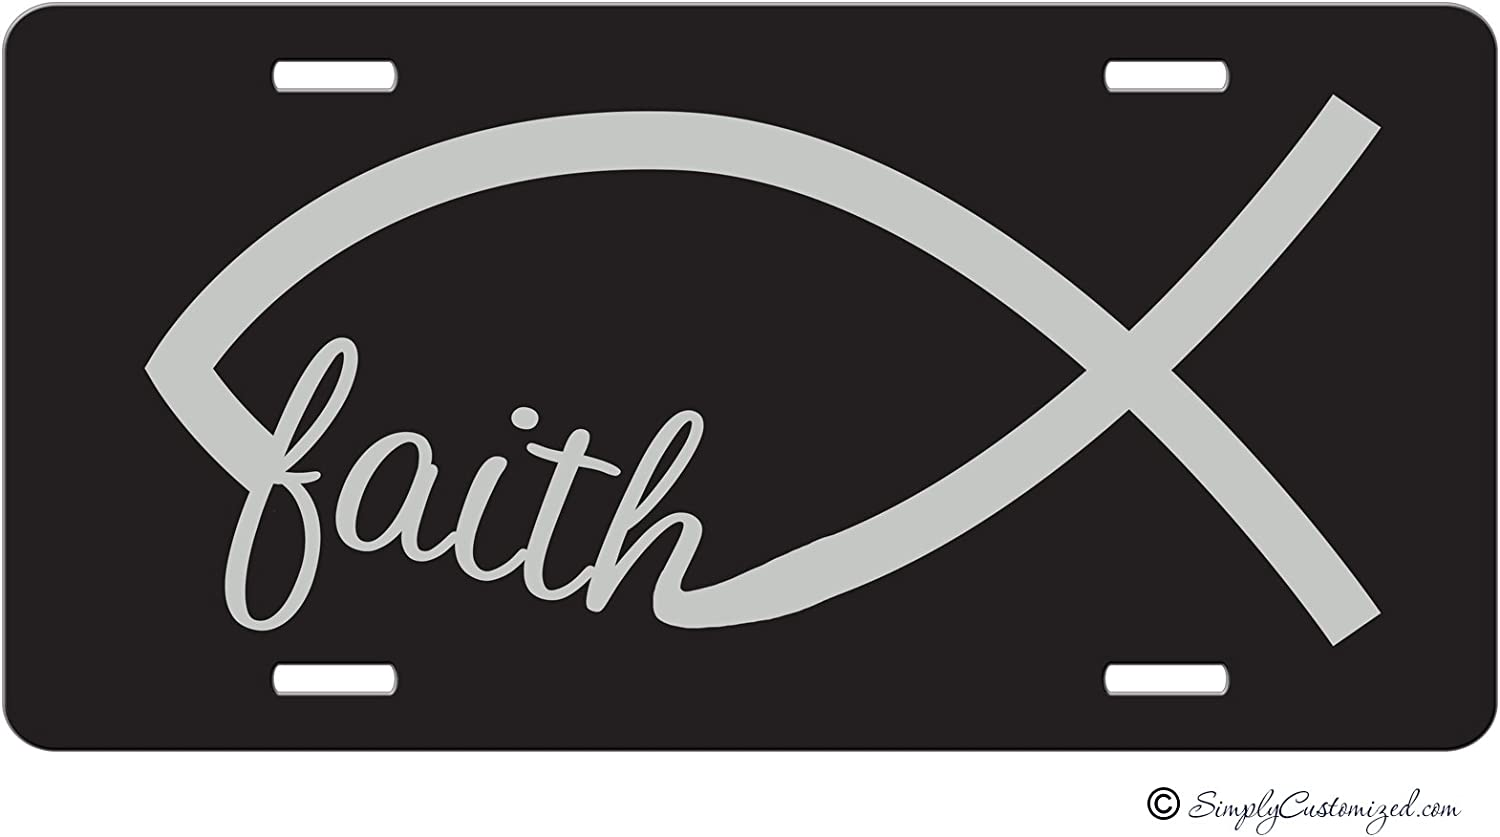 Simply Customized Christian License Plate, Christian Front Car Tag, Christian Front License Plate, Christian Decorative License Plate, Faith Jesus Fish Vanity NPLP